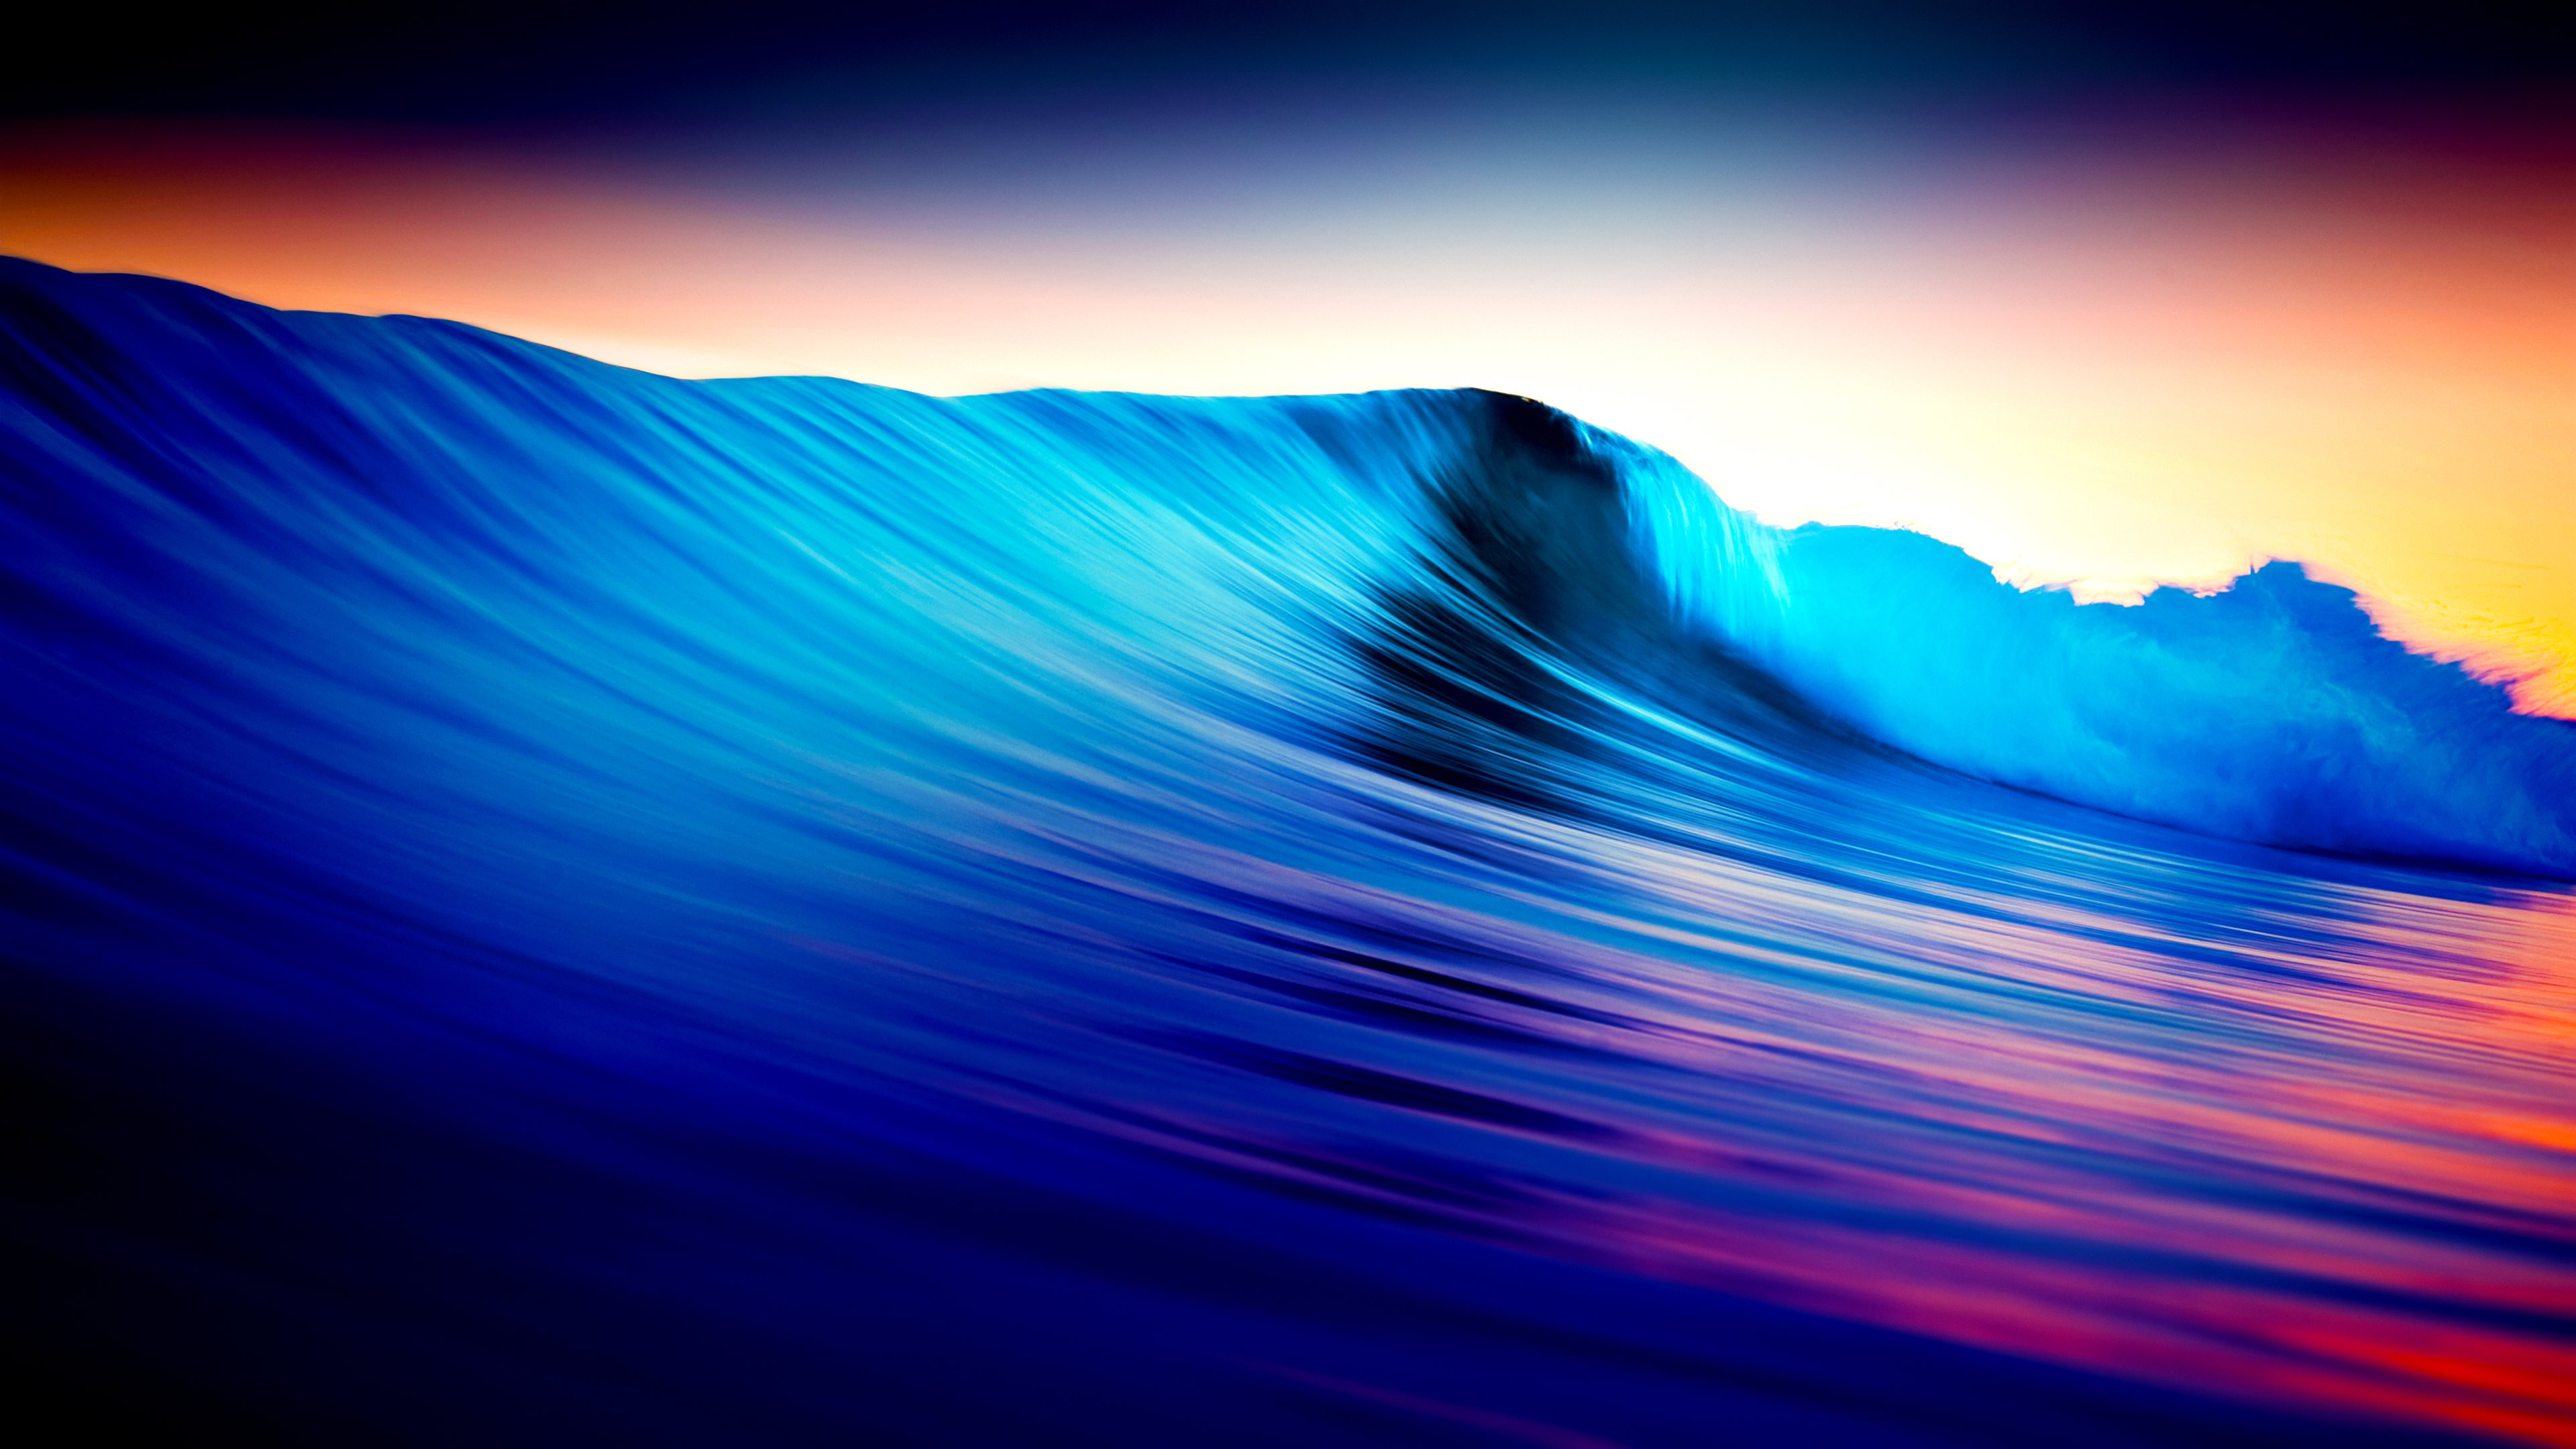 imac 4k ultra hd wallpaper - photo #9